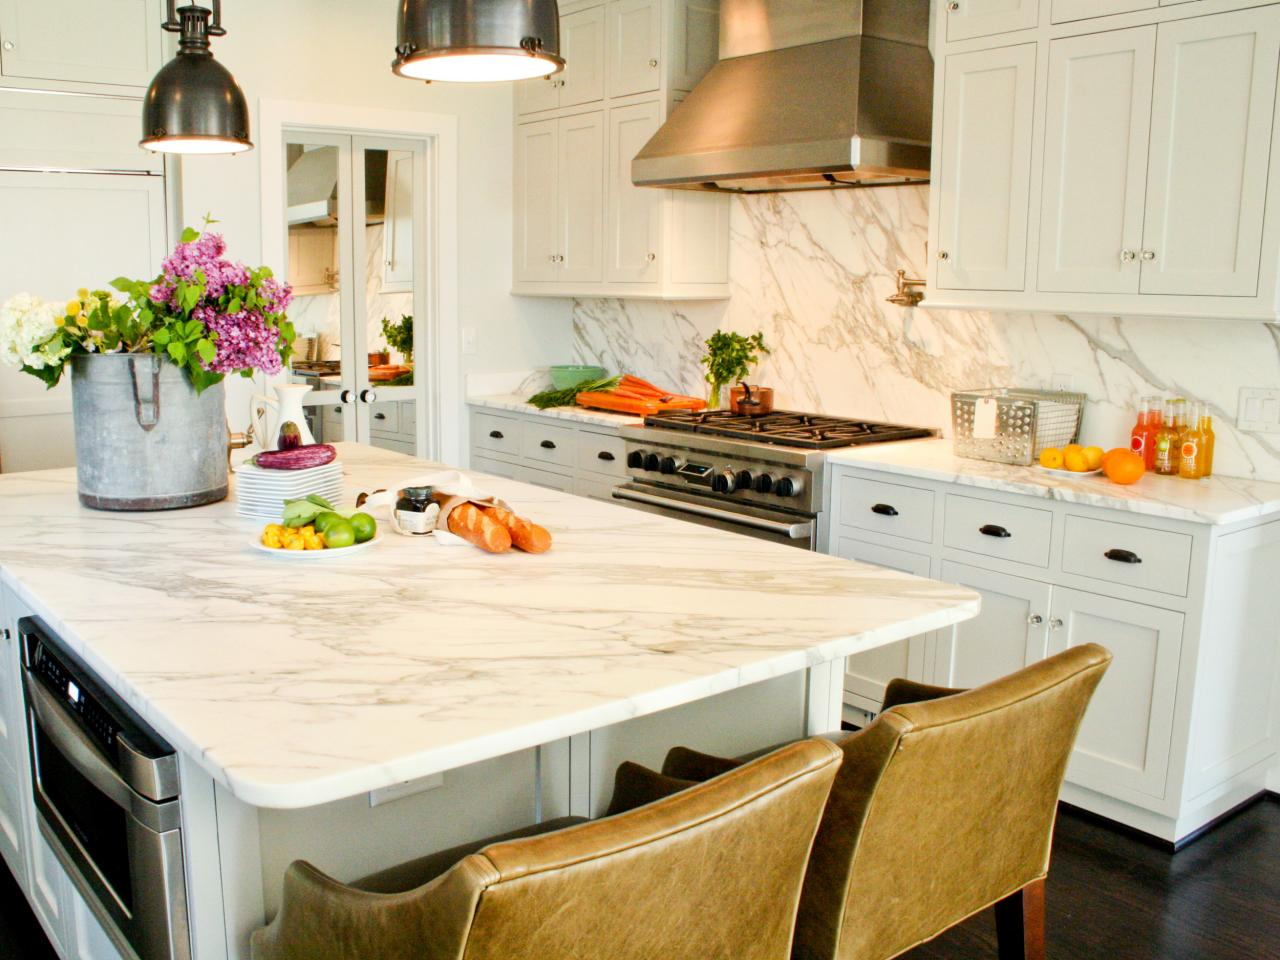 White Marble Counter : Quartz the new countertop contender hgtv